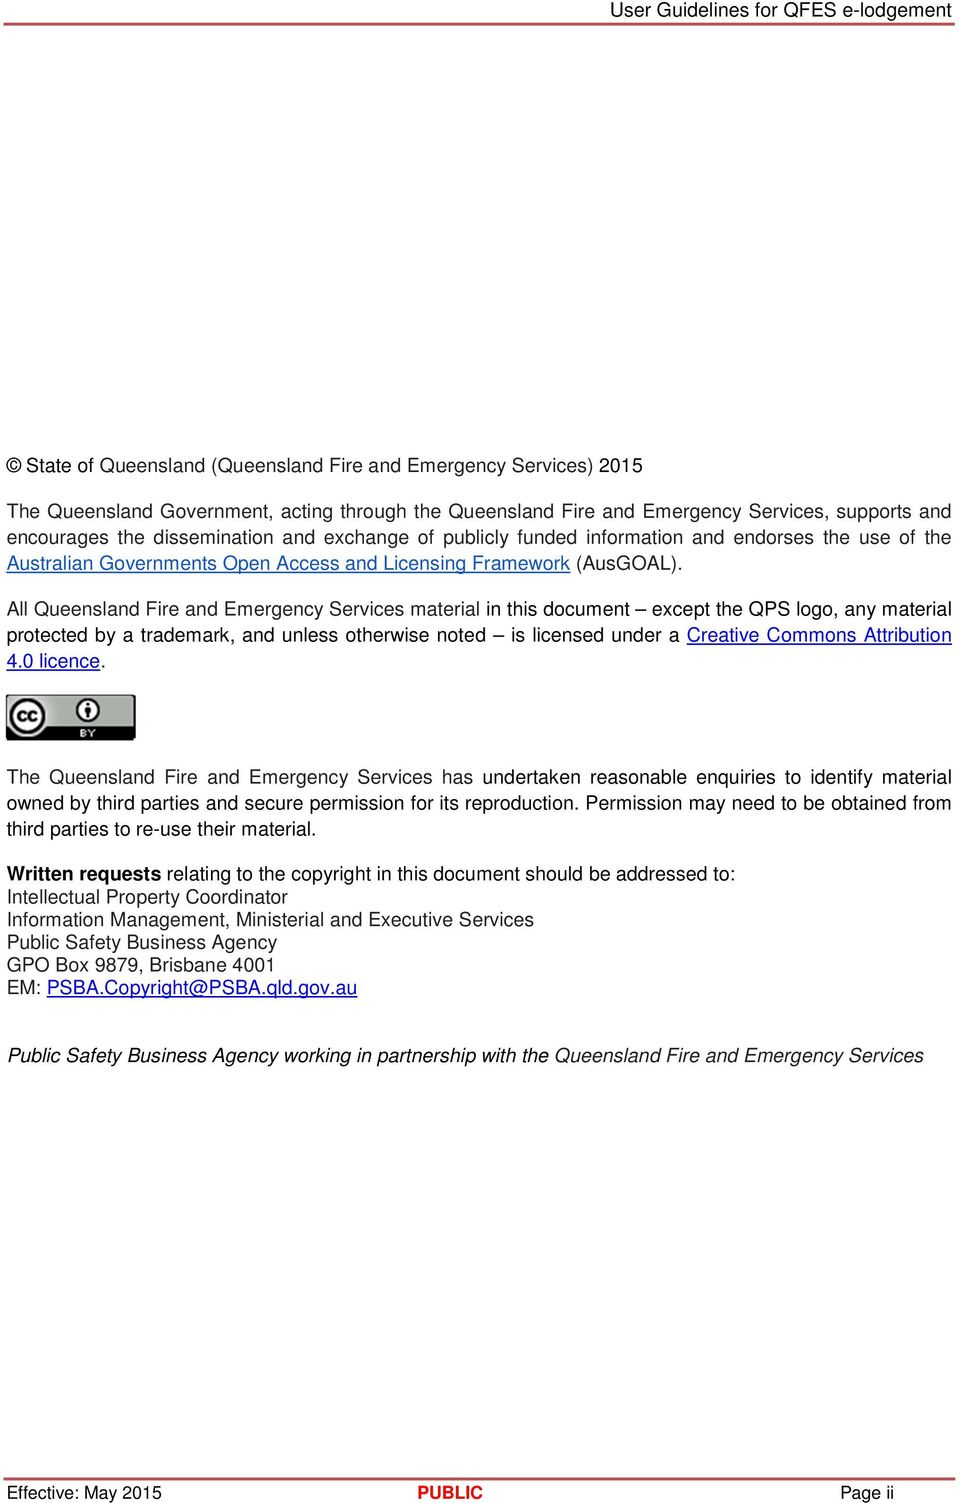 All Queensland Fire and Emergency Services material in this document except the QPS logo, any material protected by a trademark, and unless otherwise noted is licensed under a Creative Commons